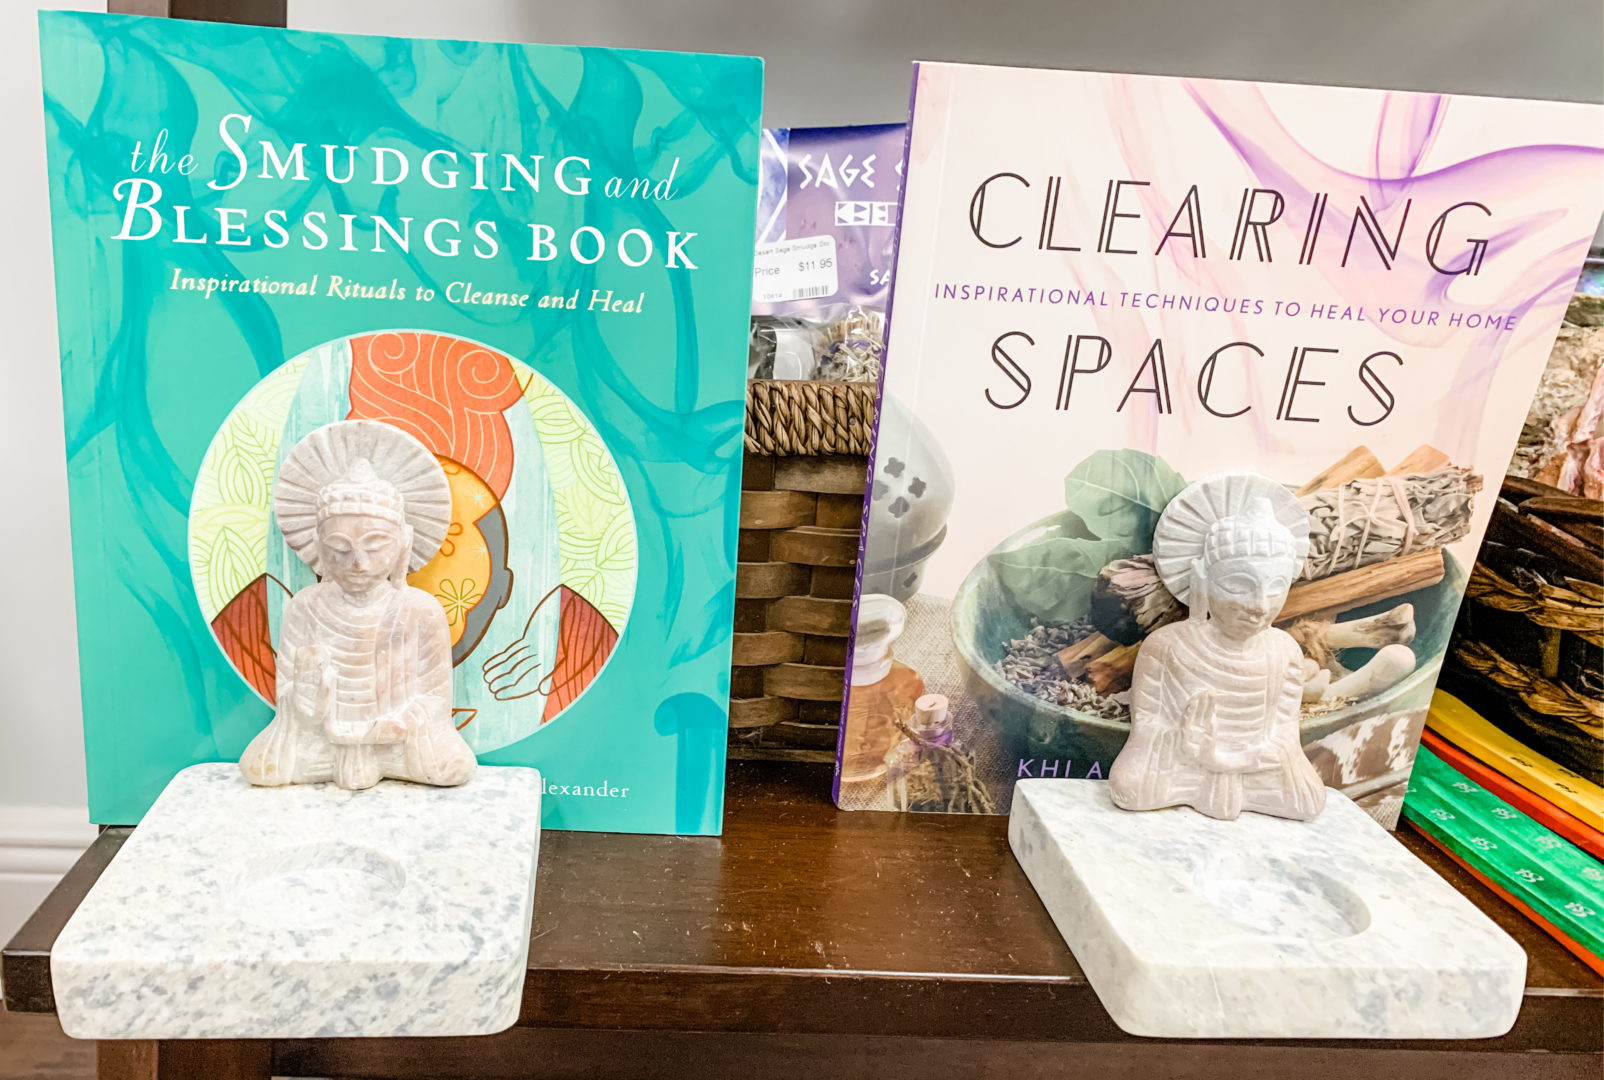 clearing space books as 5 vibrational practices for the waning moon